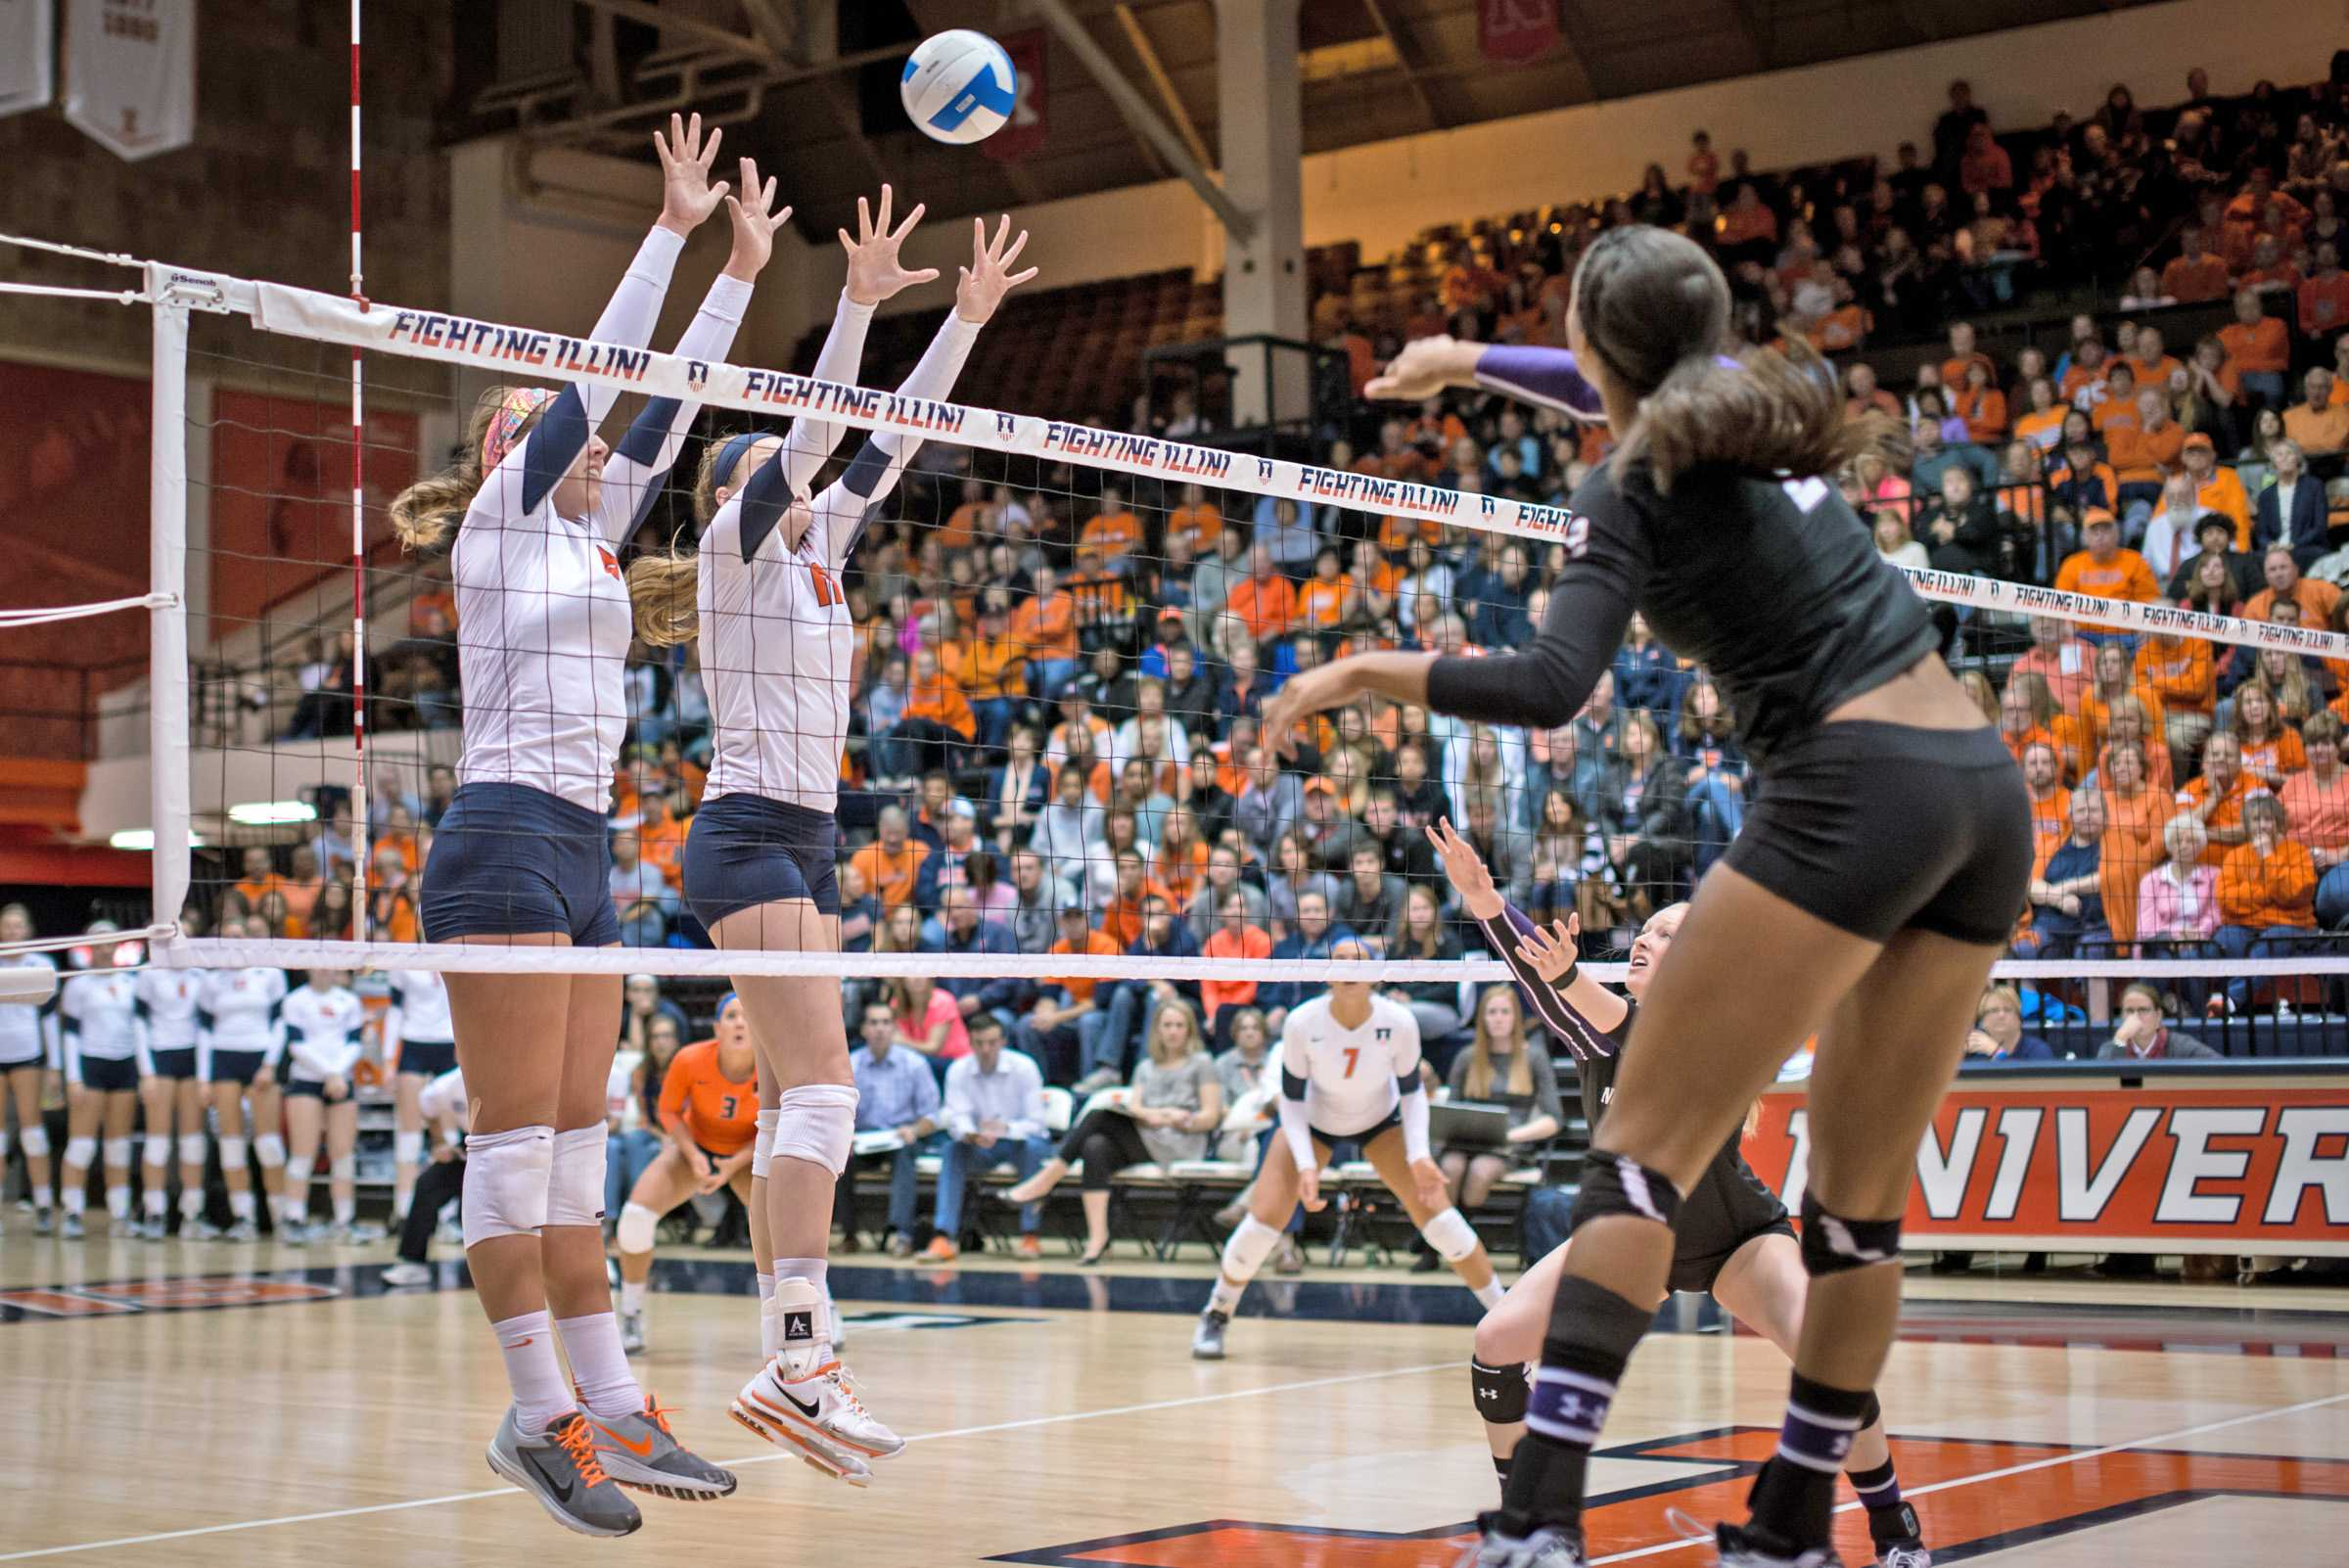 Illinois' Katie Stadick (12) attempts to block a spike during the match against Northwestern at Huff Hall on Saturday, November 8, 2014. The Illini won 3 of 4 sets.